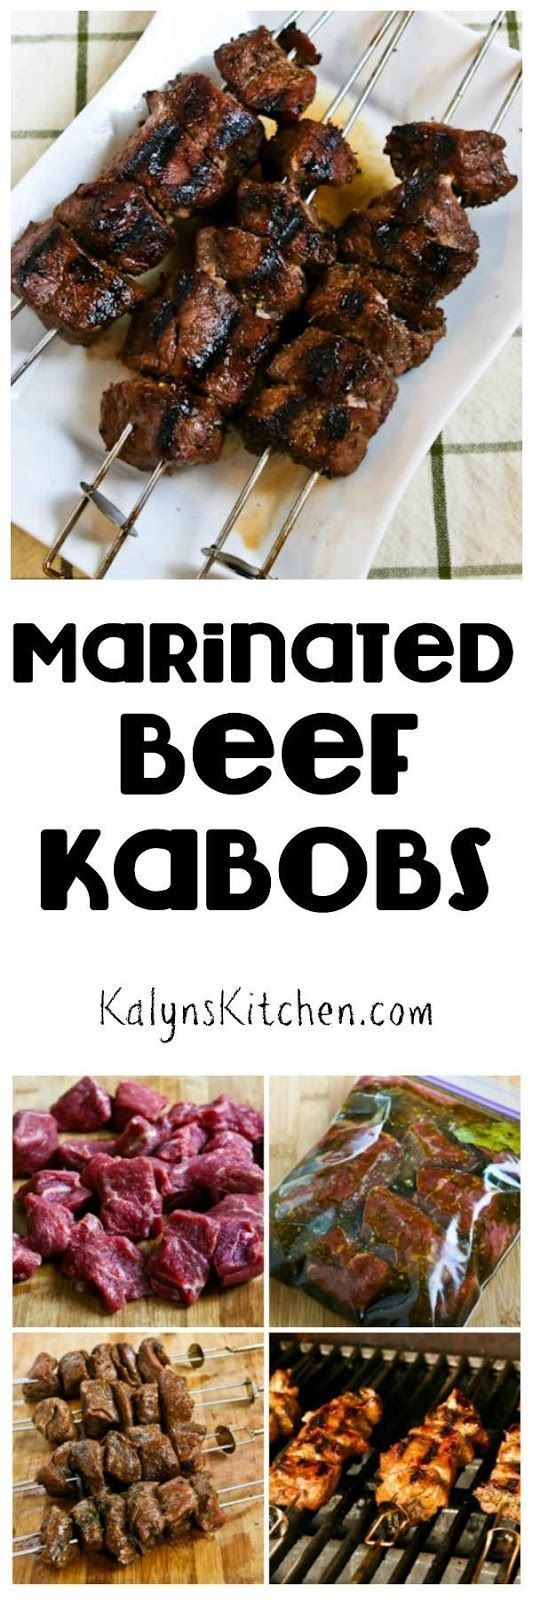 Marinated Beef Kabobs | Pinterest | Beef kabobs, Health and Beaches